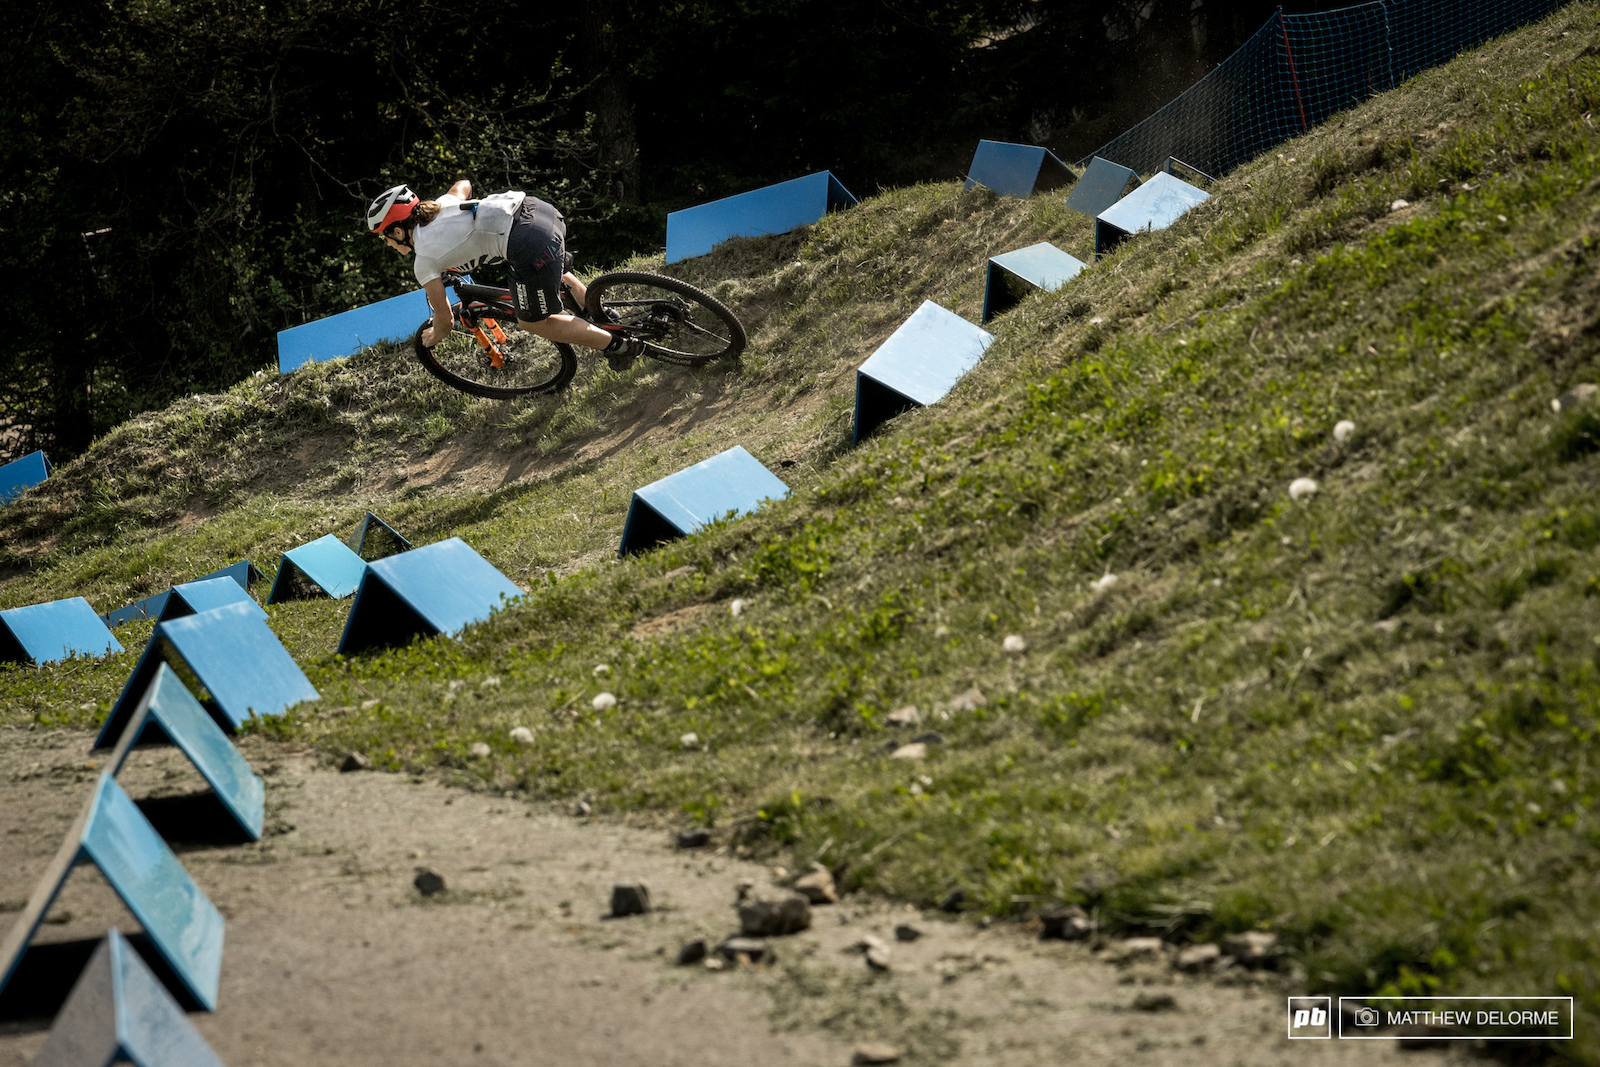 XC World Cup Round 1 Nove Mesto - Course Preview With T-Mo